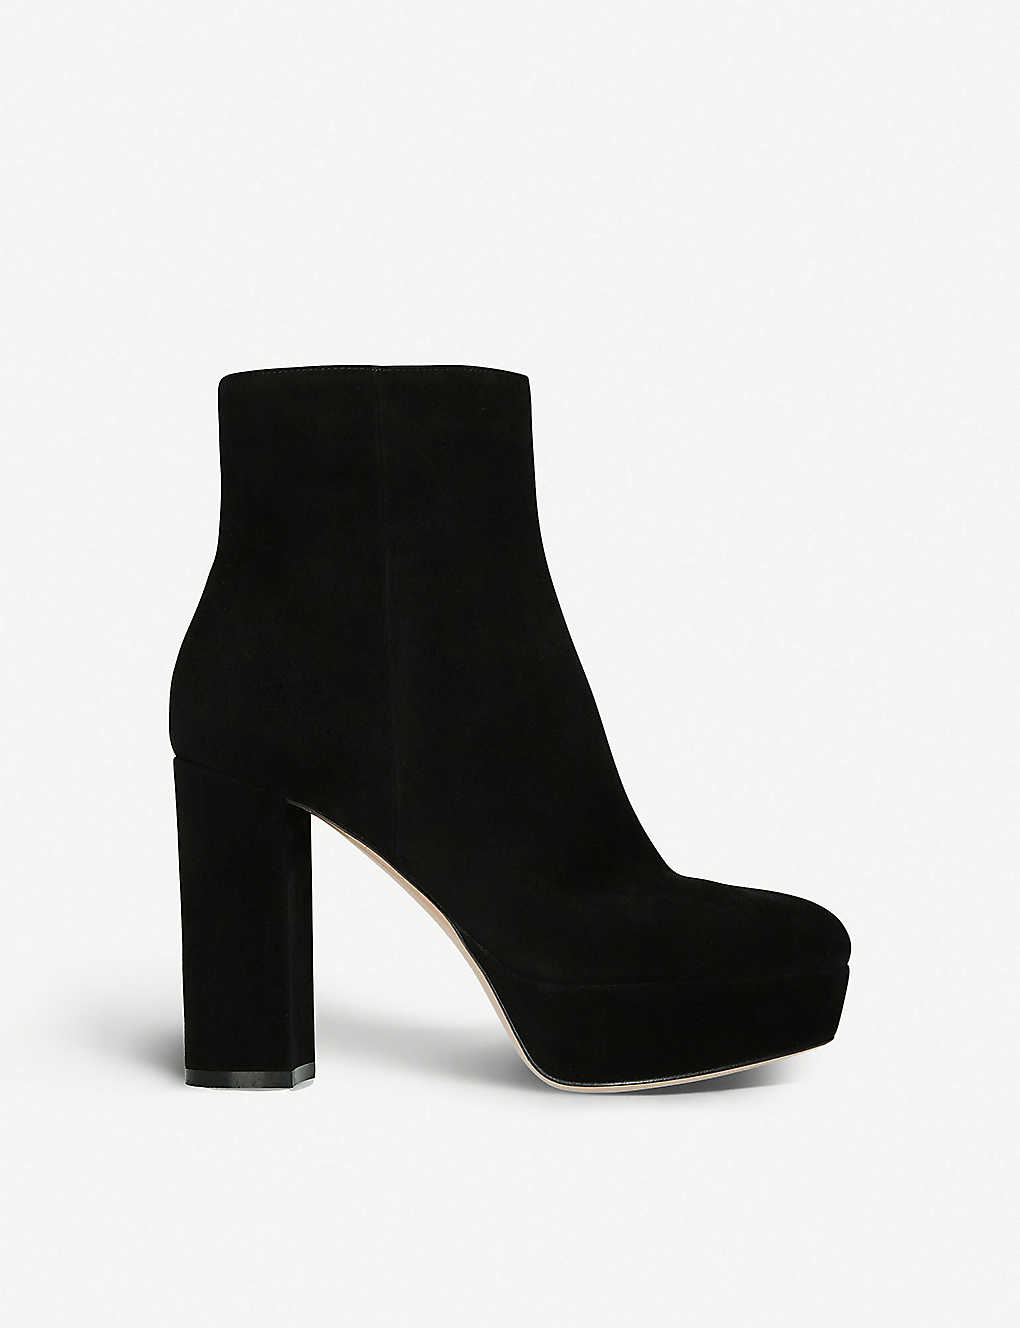 GIANVITO ROSSI - Foley platform suede ankle boots